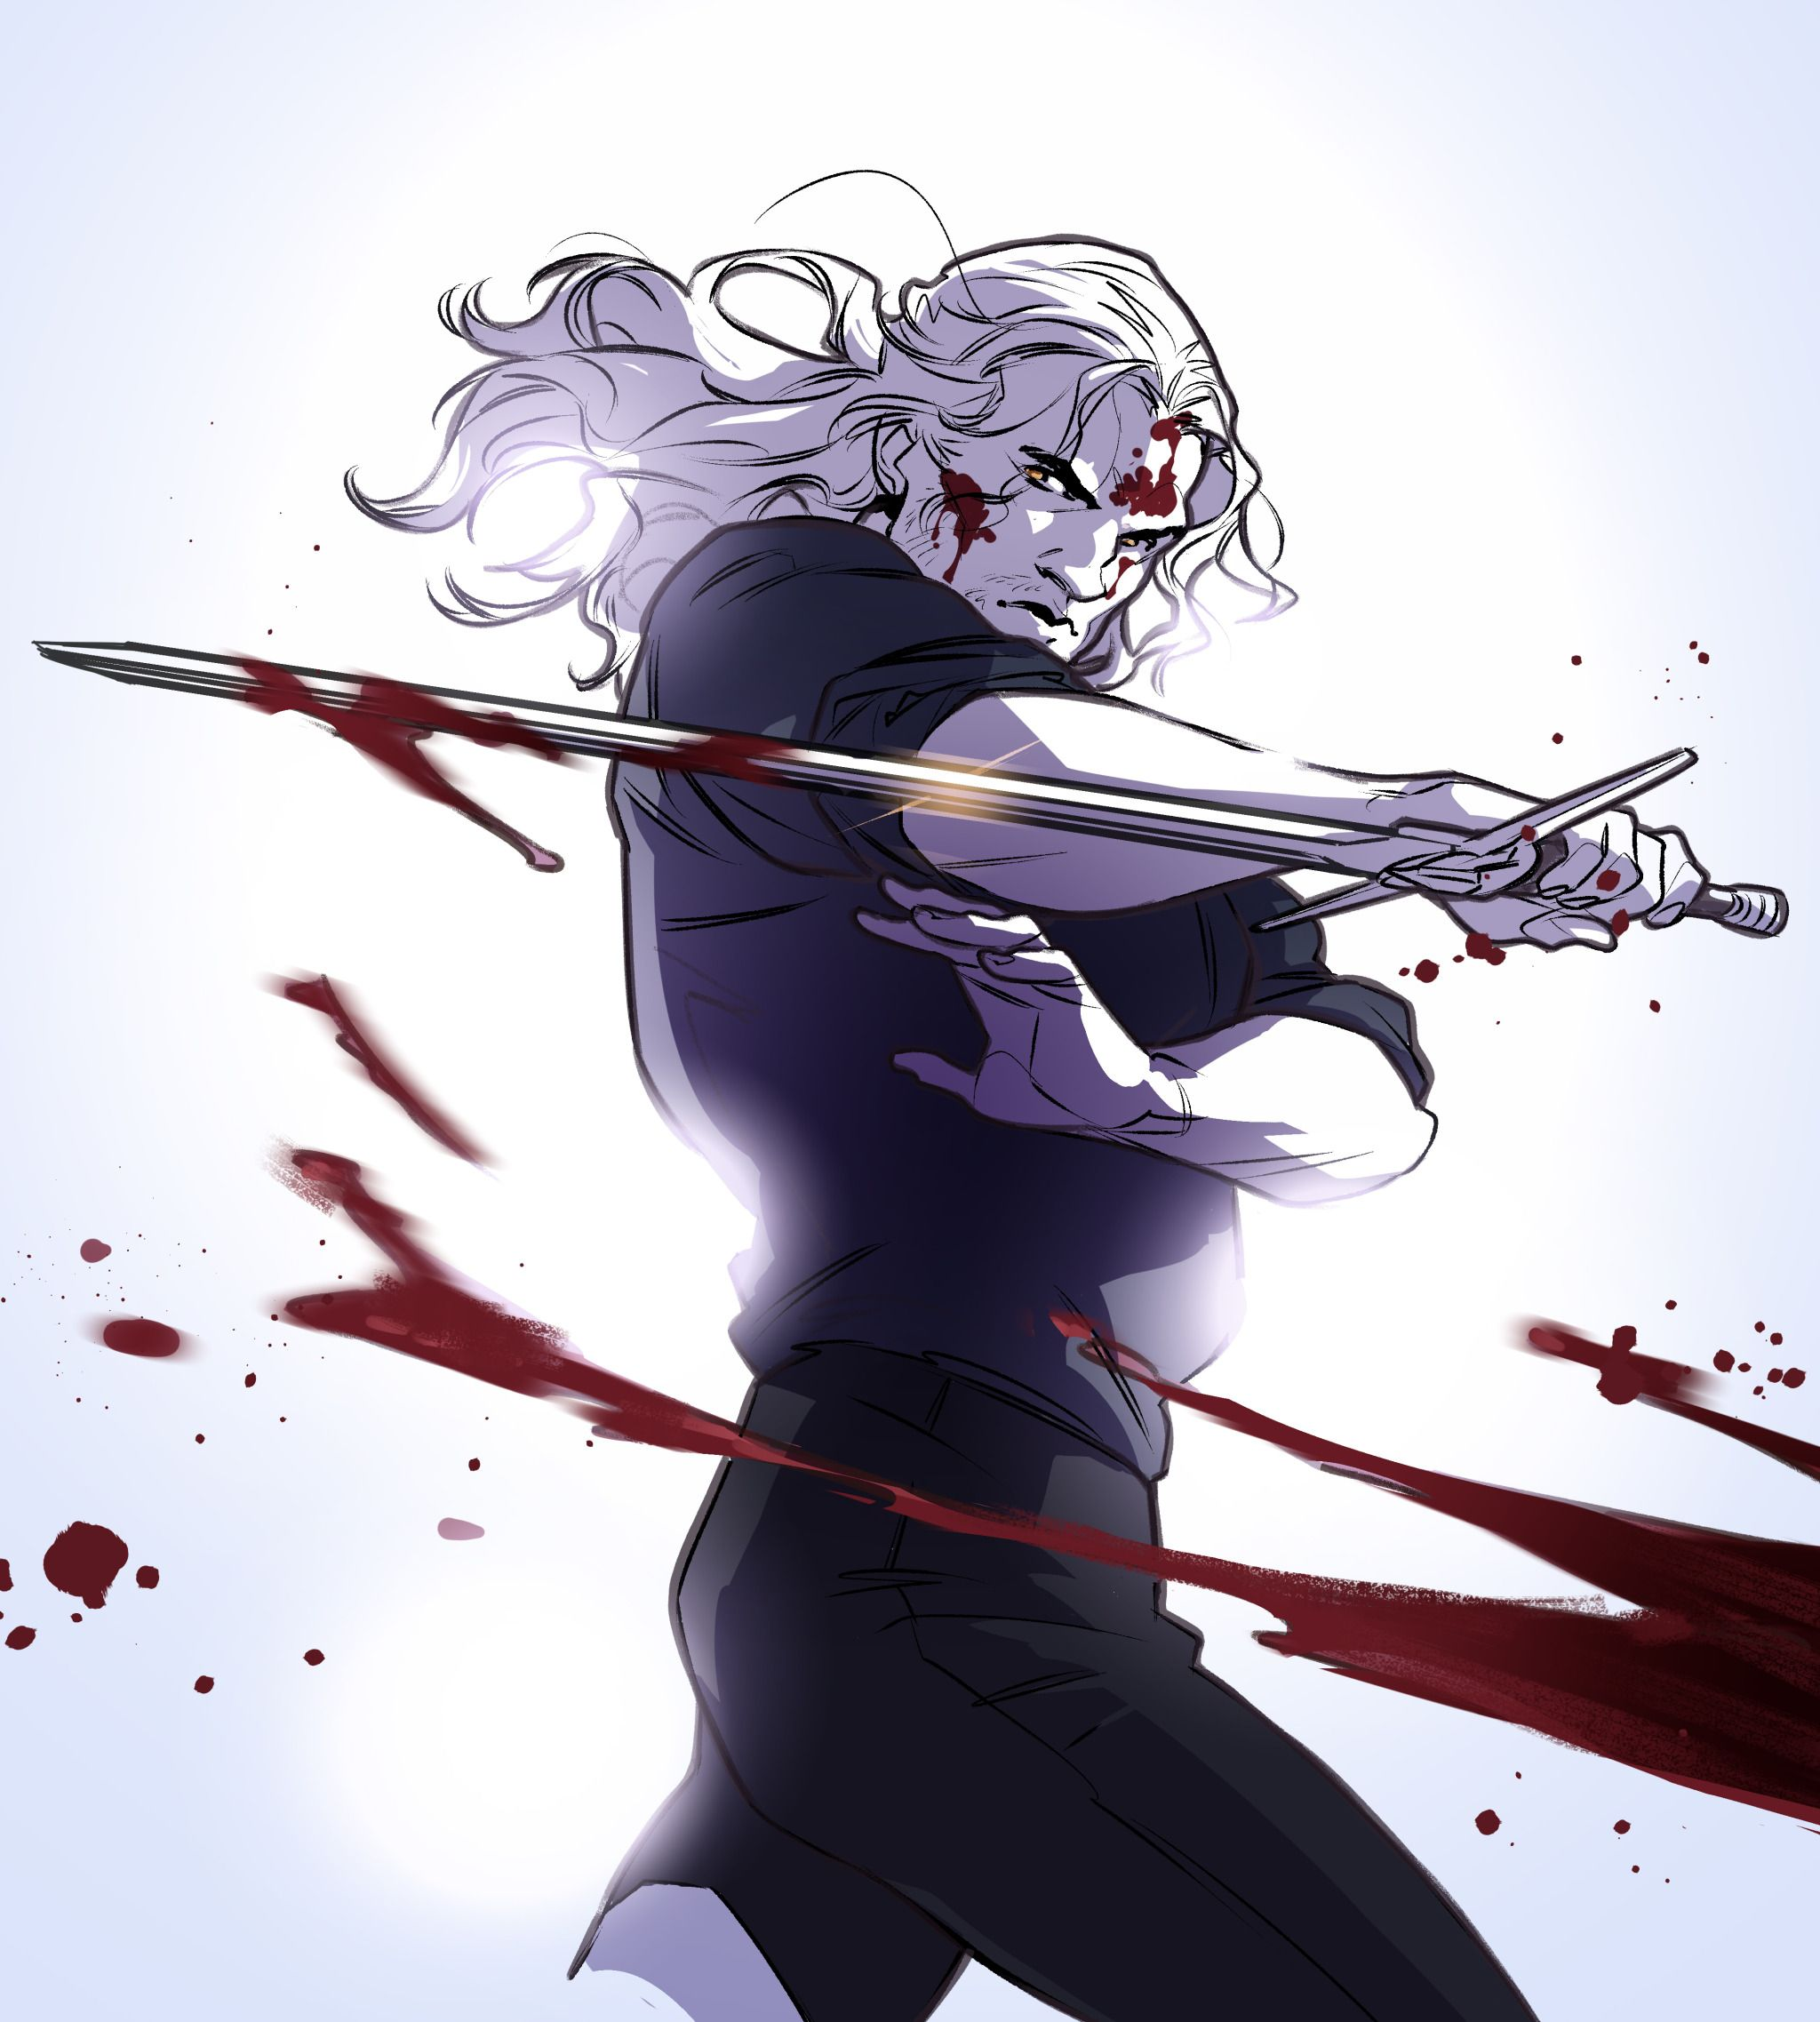 Love The Fight Scene In Ep 01 Witcher Art The Witcher Books The Witcher Game